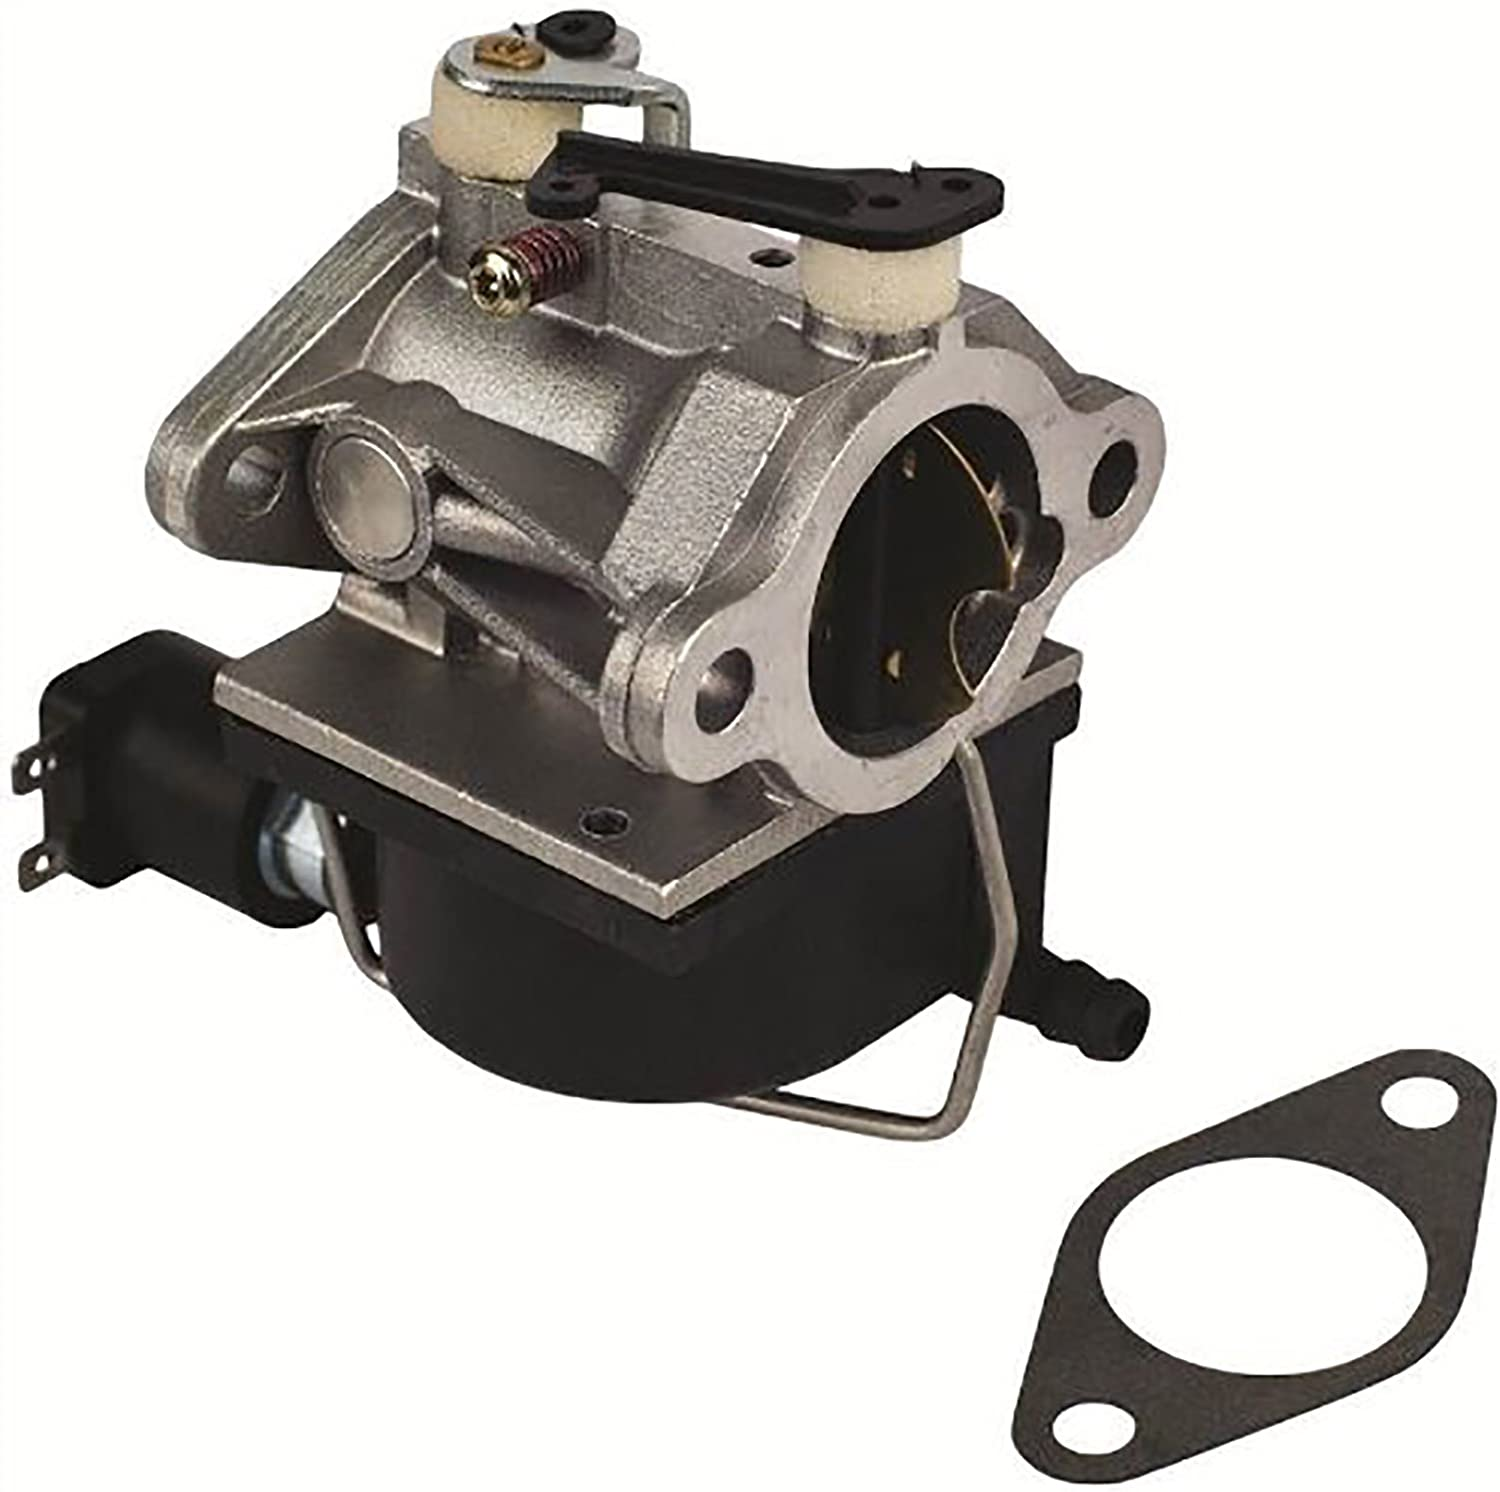 PROCOMPANY Carburetor for Tecumseh 640072A Models OHV175-204807B OHV175-204807C OHV175-204808B